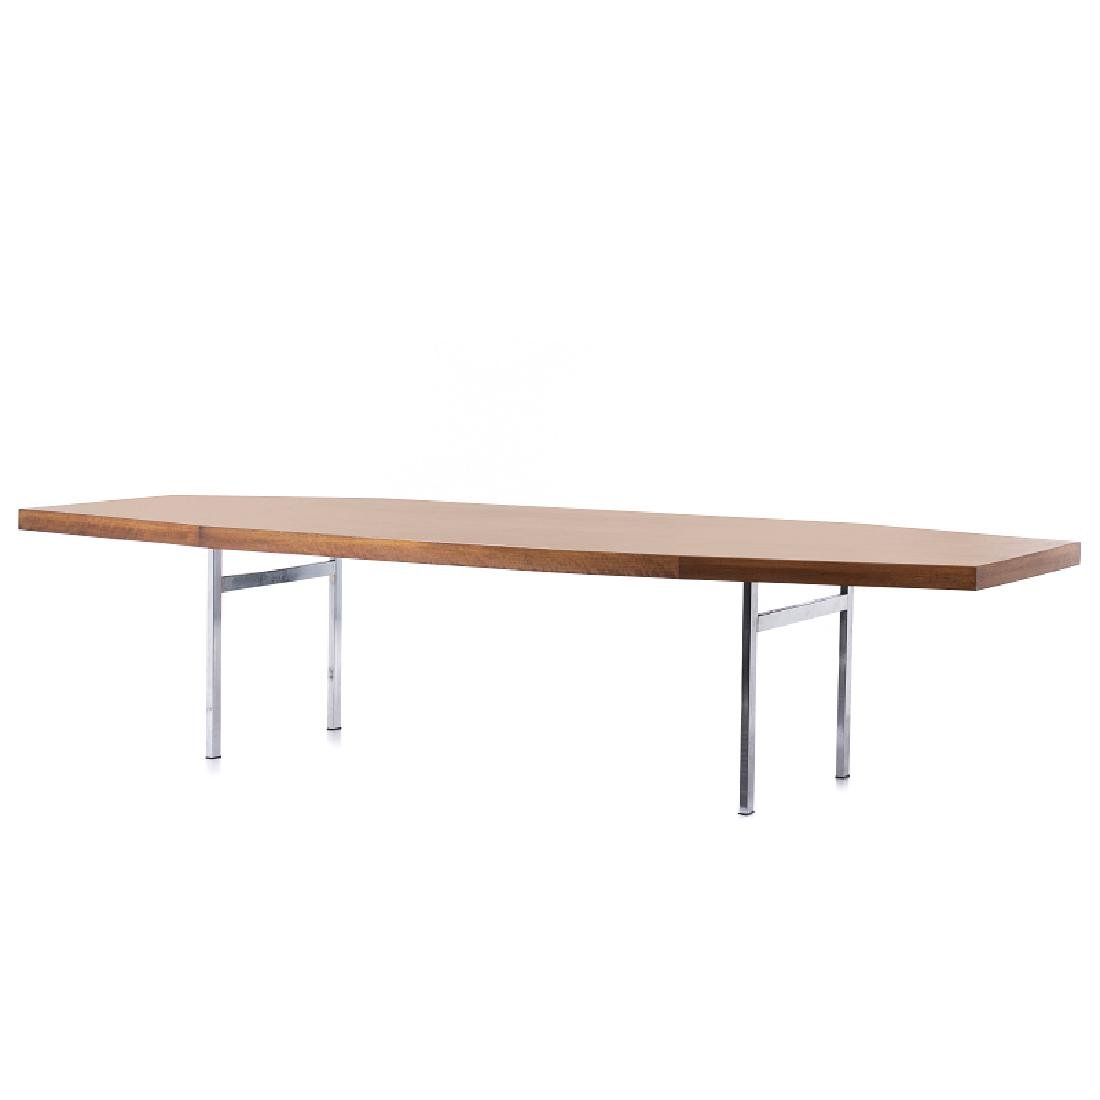 DACIANO DA COSTA (1930-2005) - Large conference table